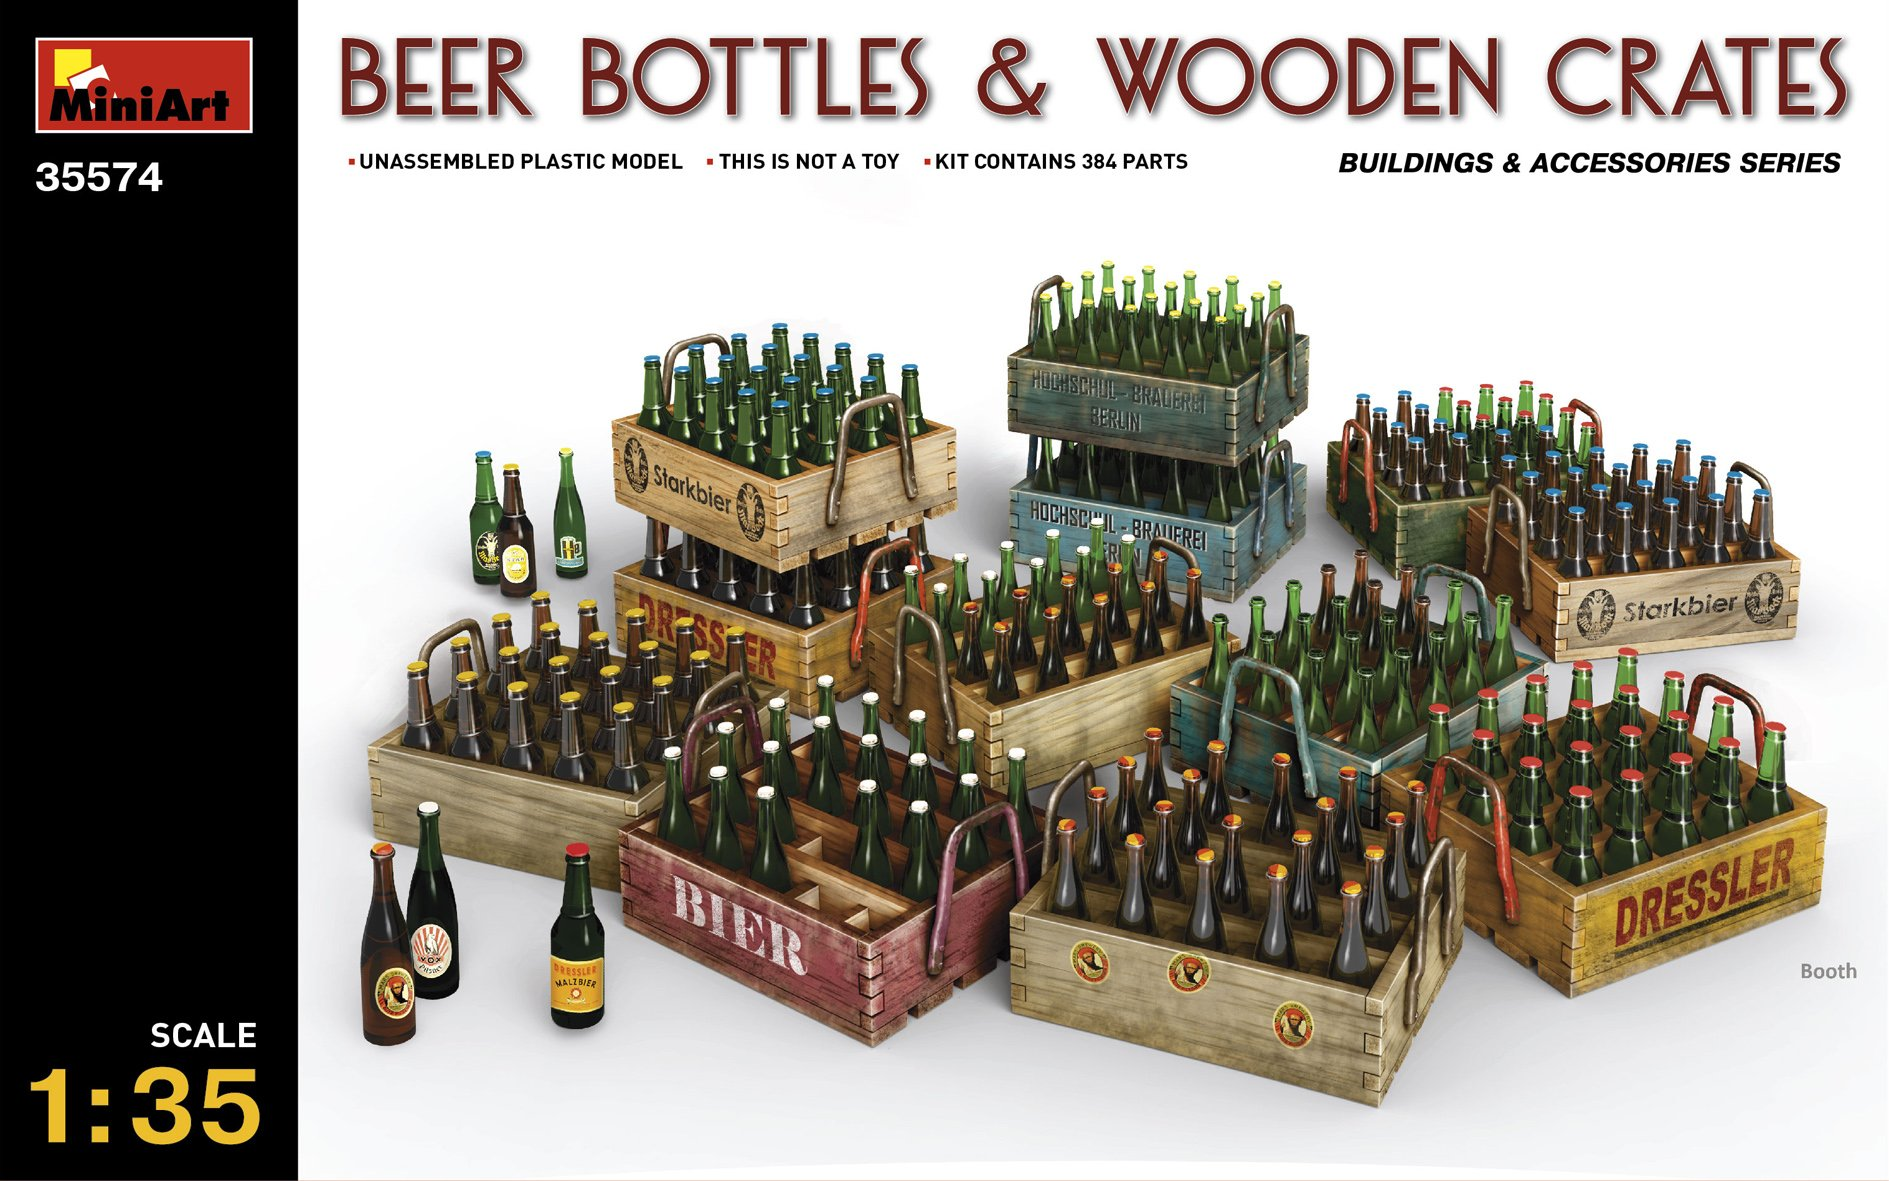 PLASTIC MODEL BUILDING DIORAMA BEER BOTTLES AND WOODEN СRATES 1/35 MINIART 35574